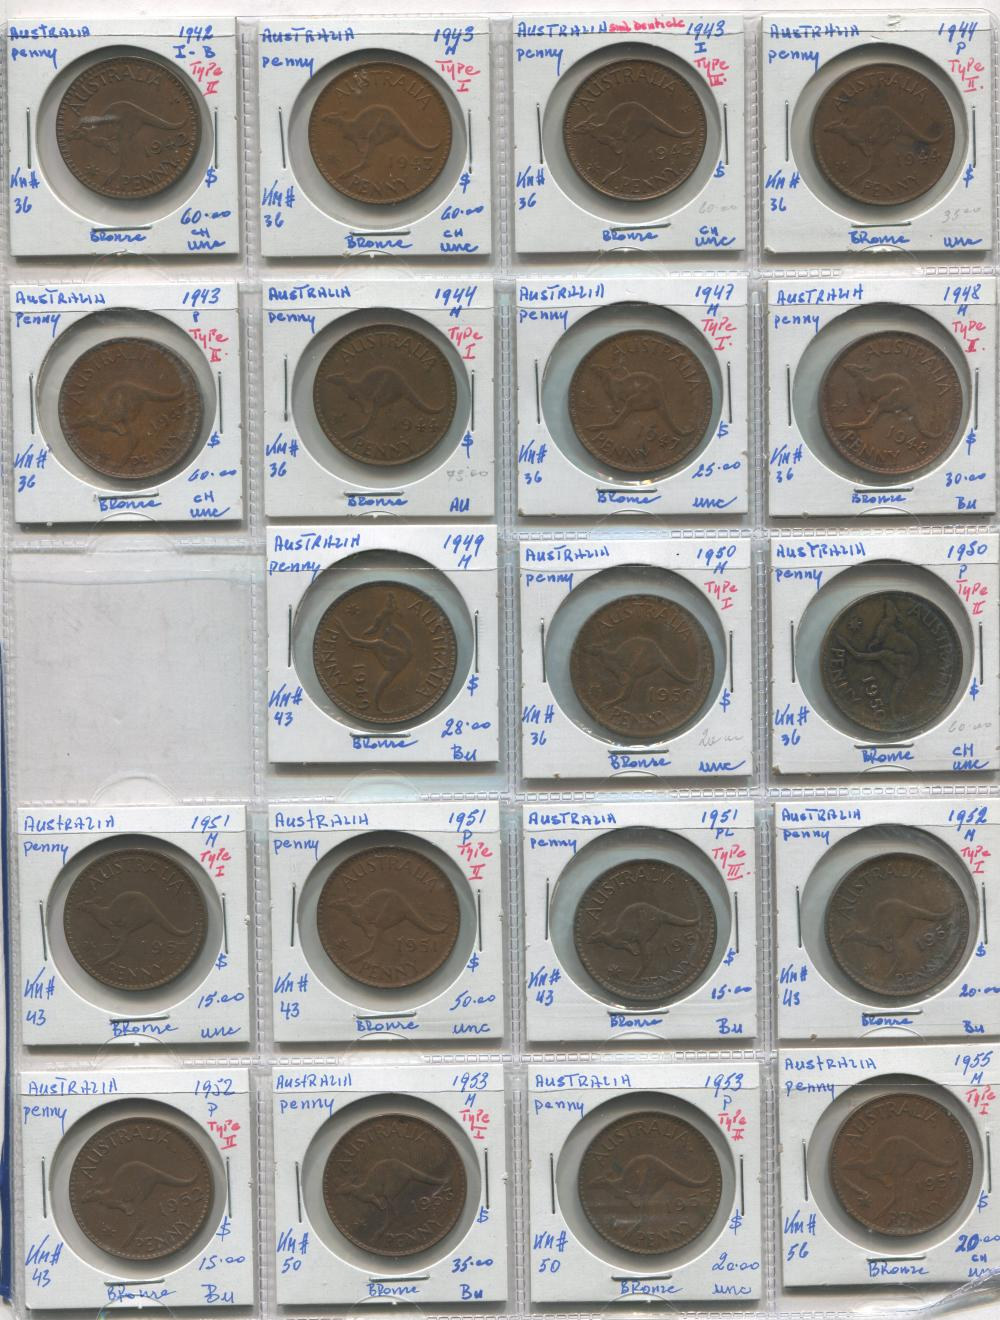 Australia 1942-55 1 Penny Coin Collection